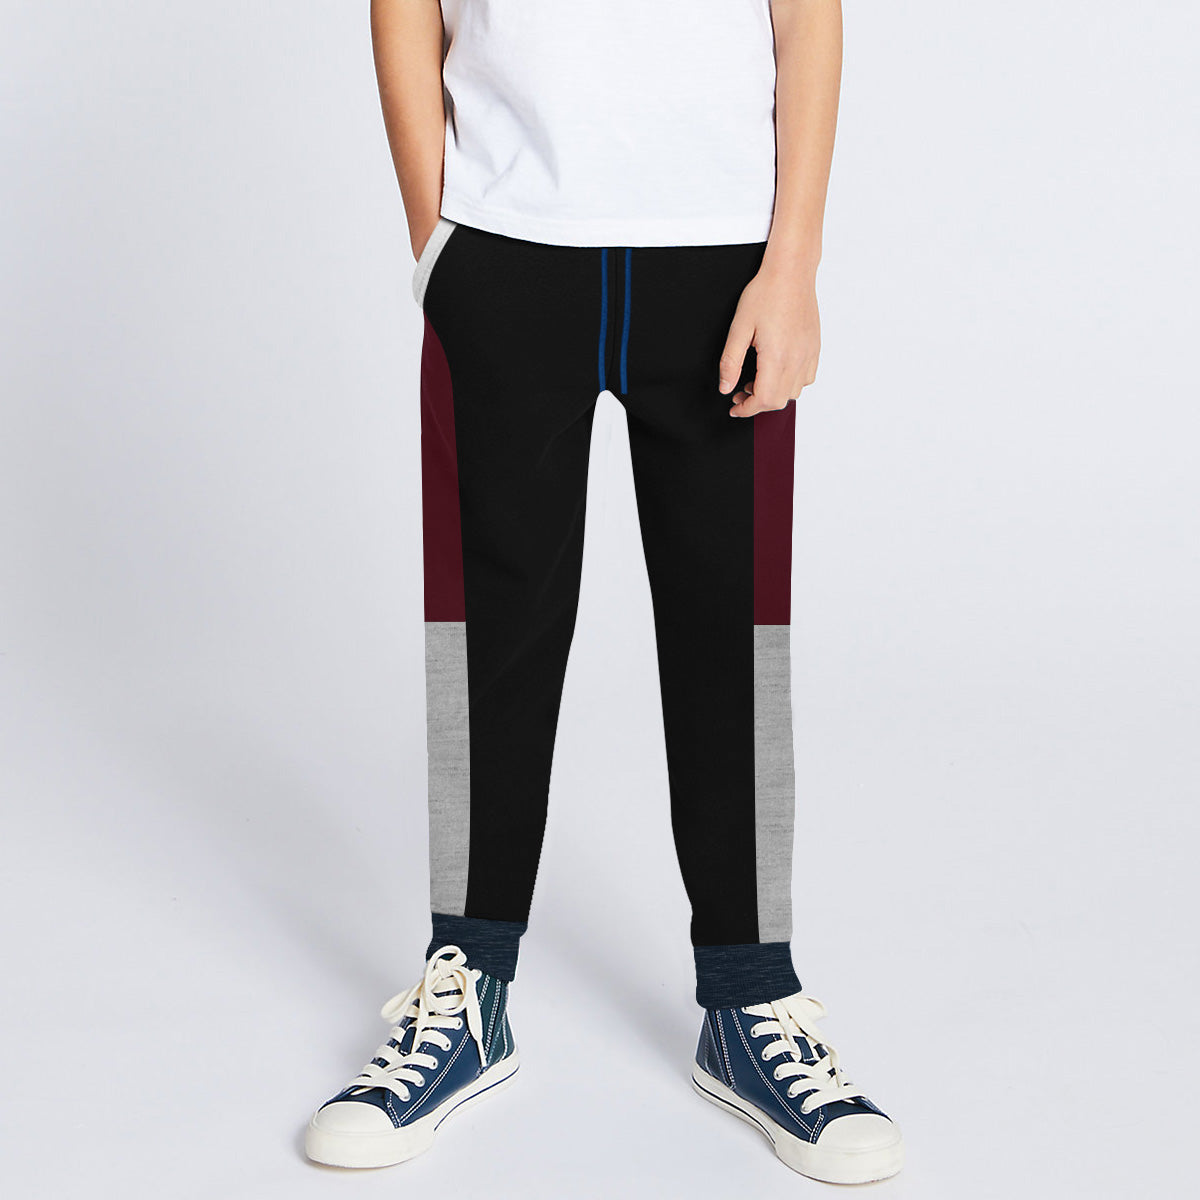 Next Slim Fit Jogger Trouser For Kids-Black with Maroon & Grey Melange Panels-BE11283